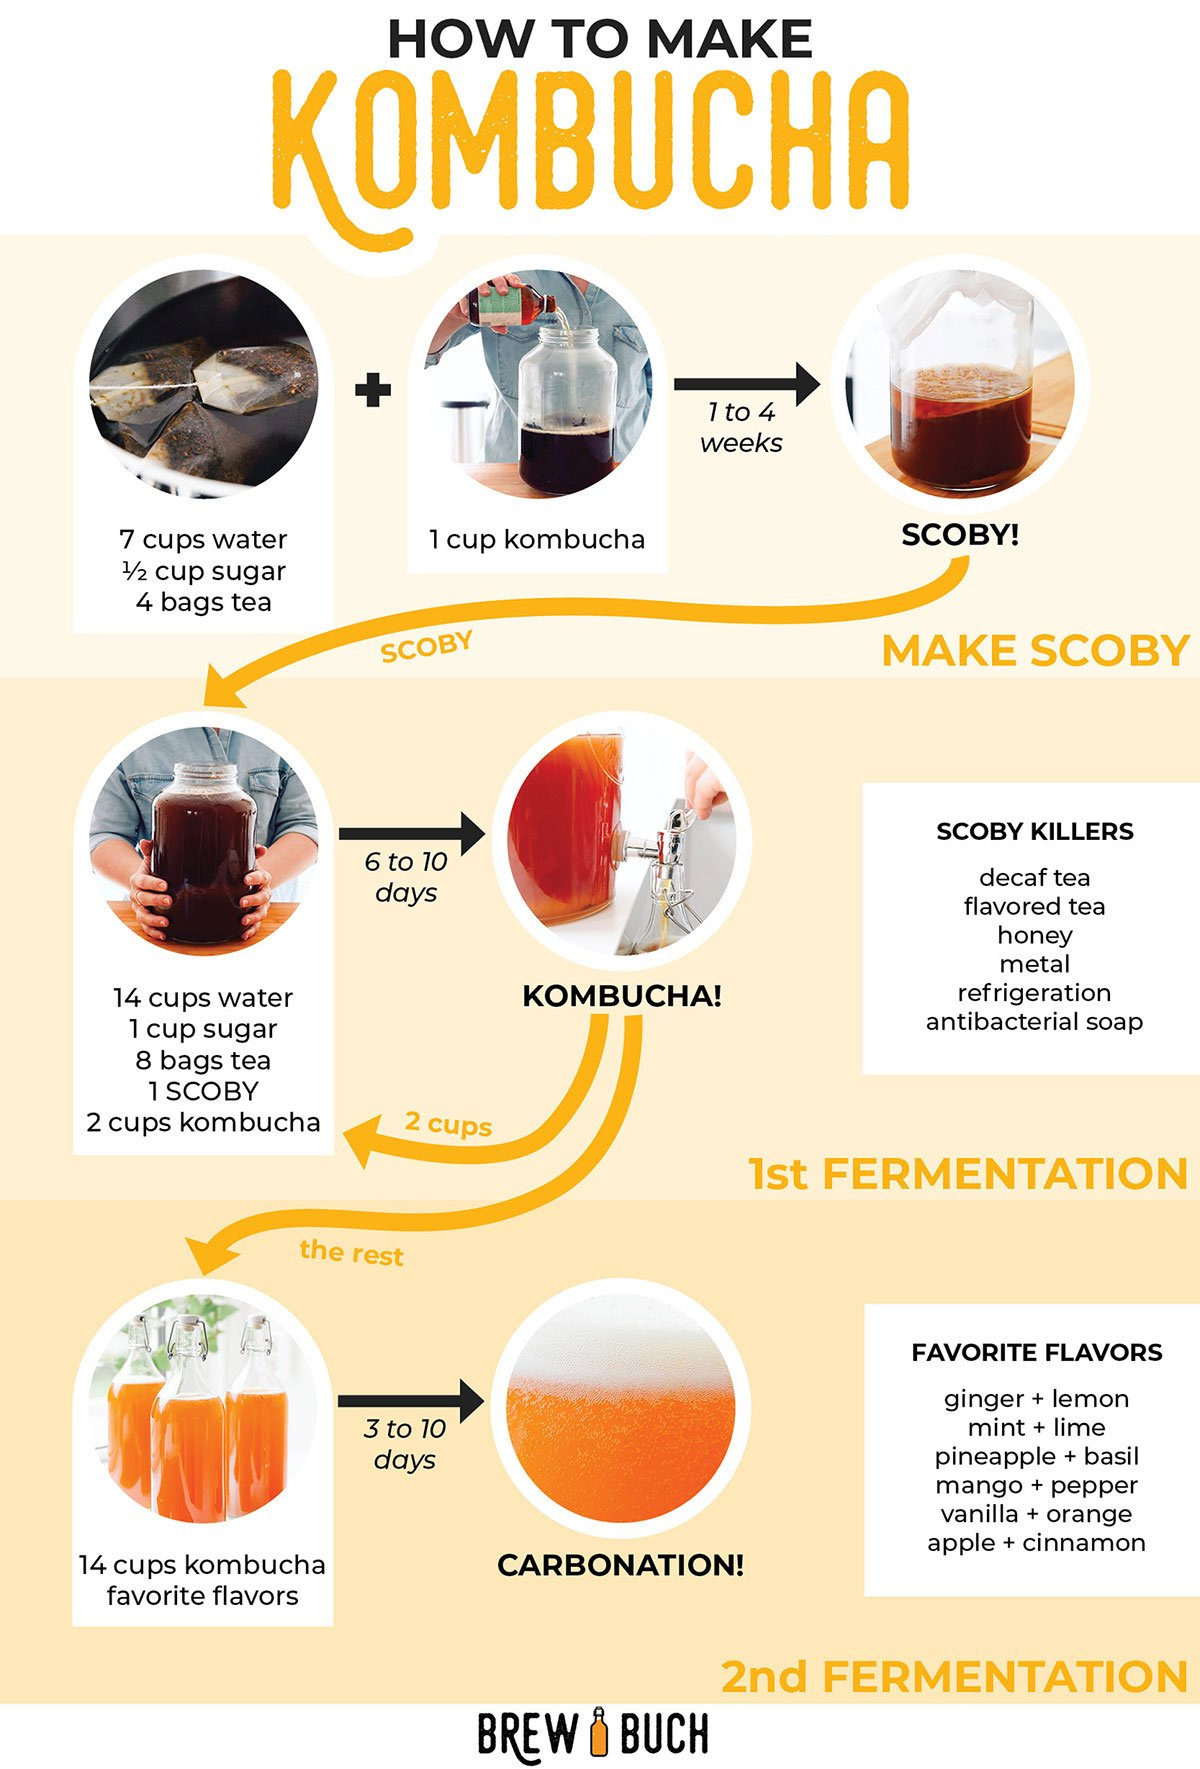 How to make kombucha infographic